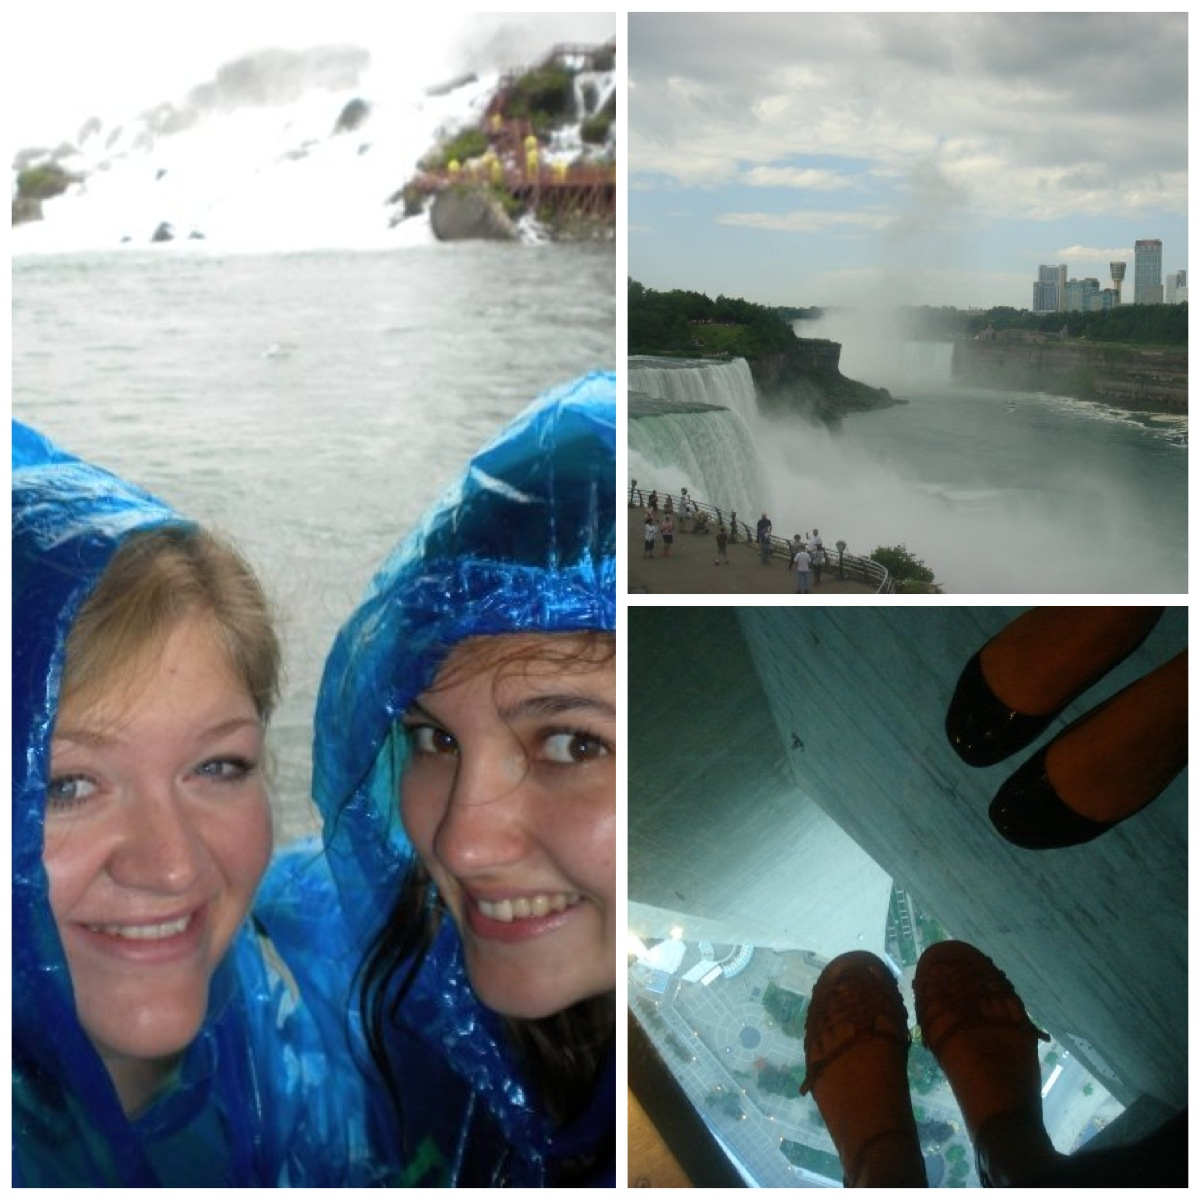 Niagara Falls and the top of the CN Tower in Toronto